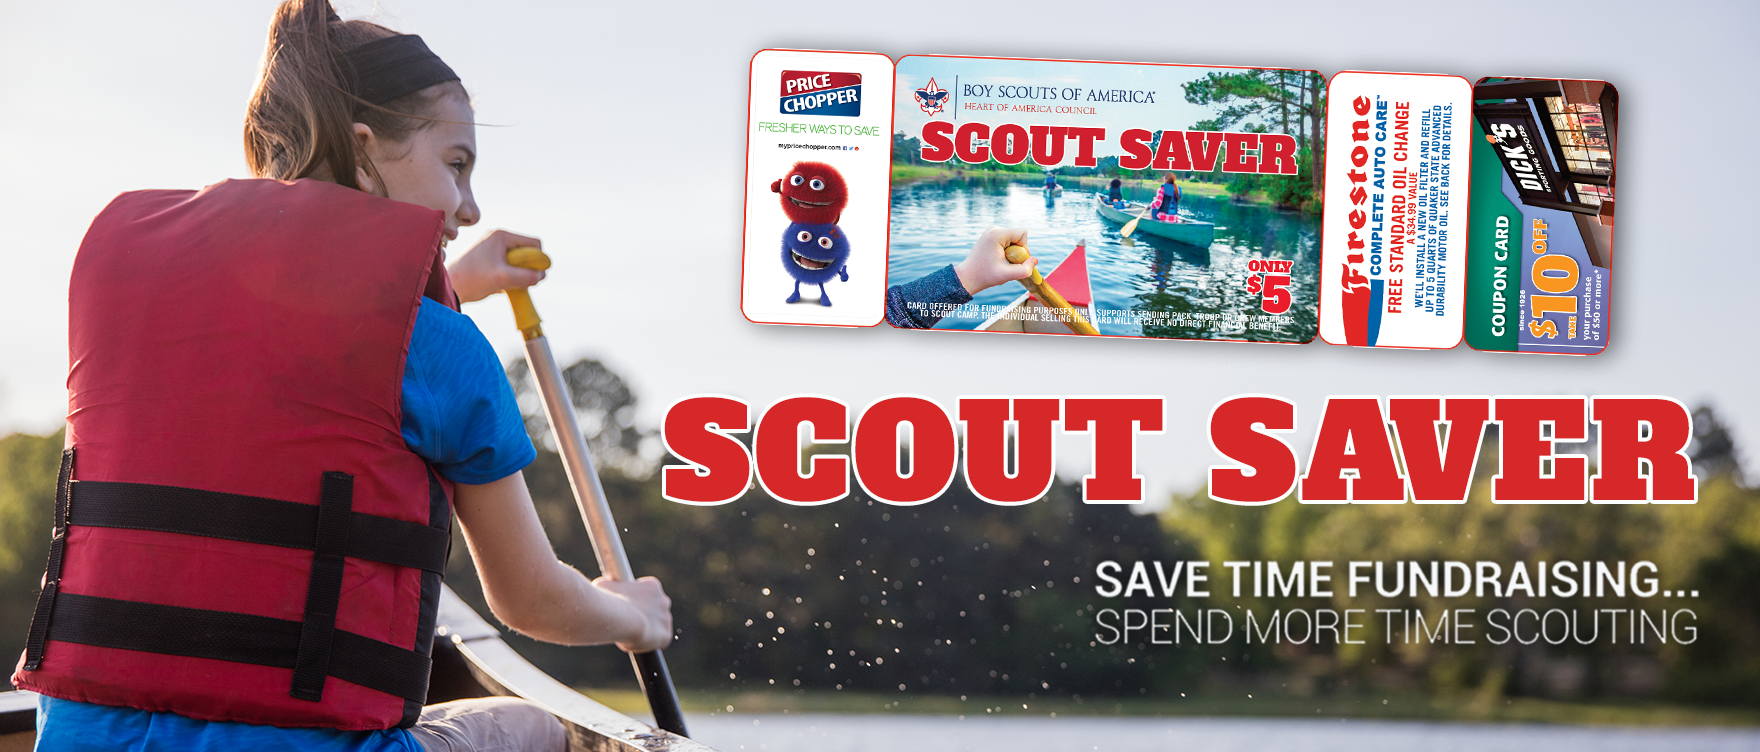 Scout Saver